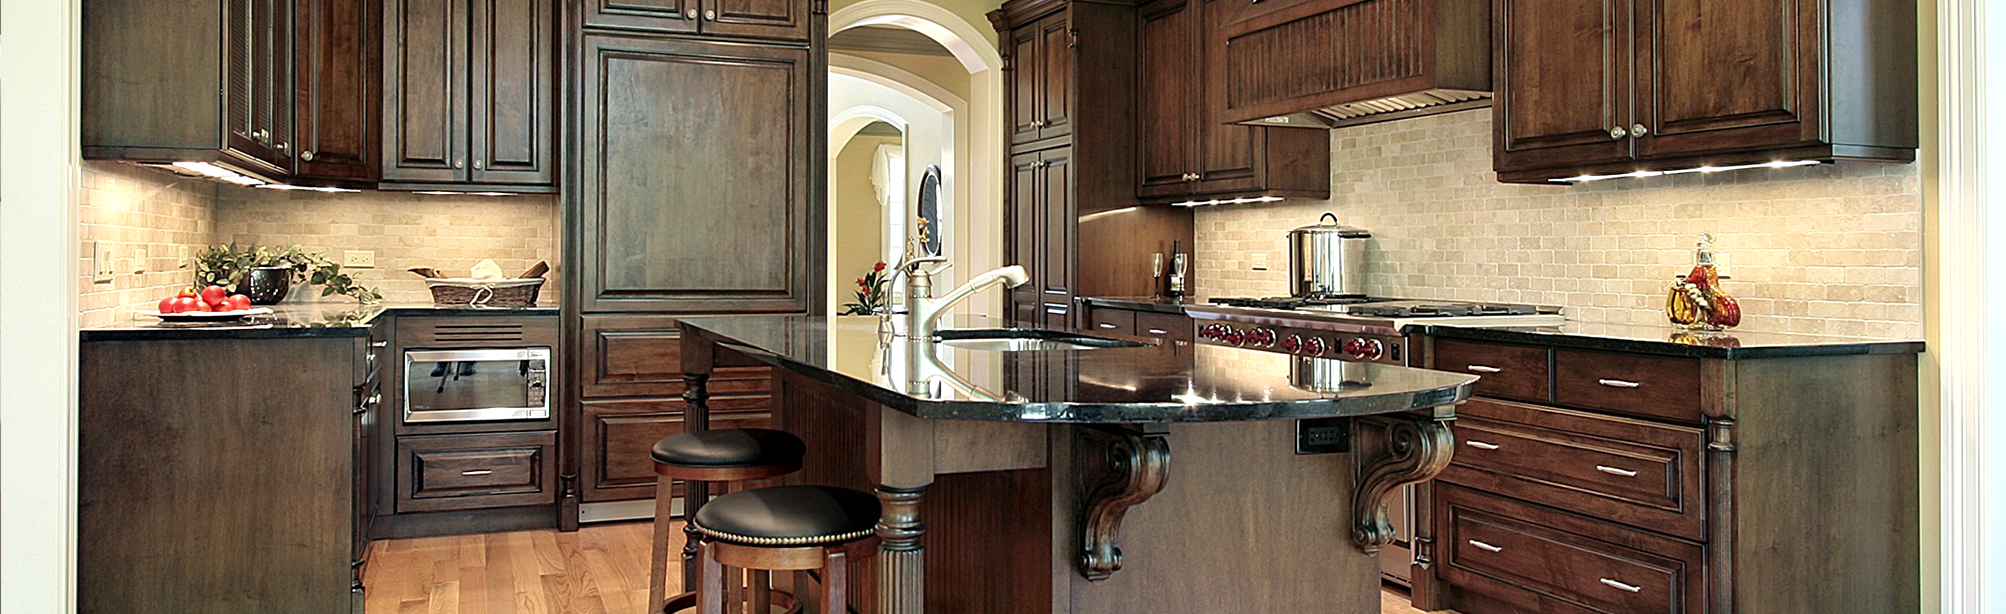 dark-cabinets-Kitchen-Remodeling